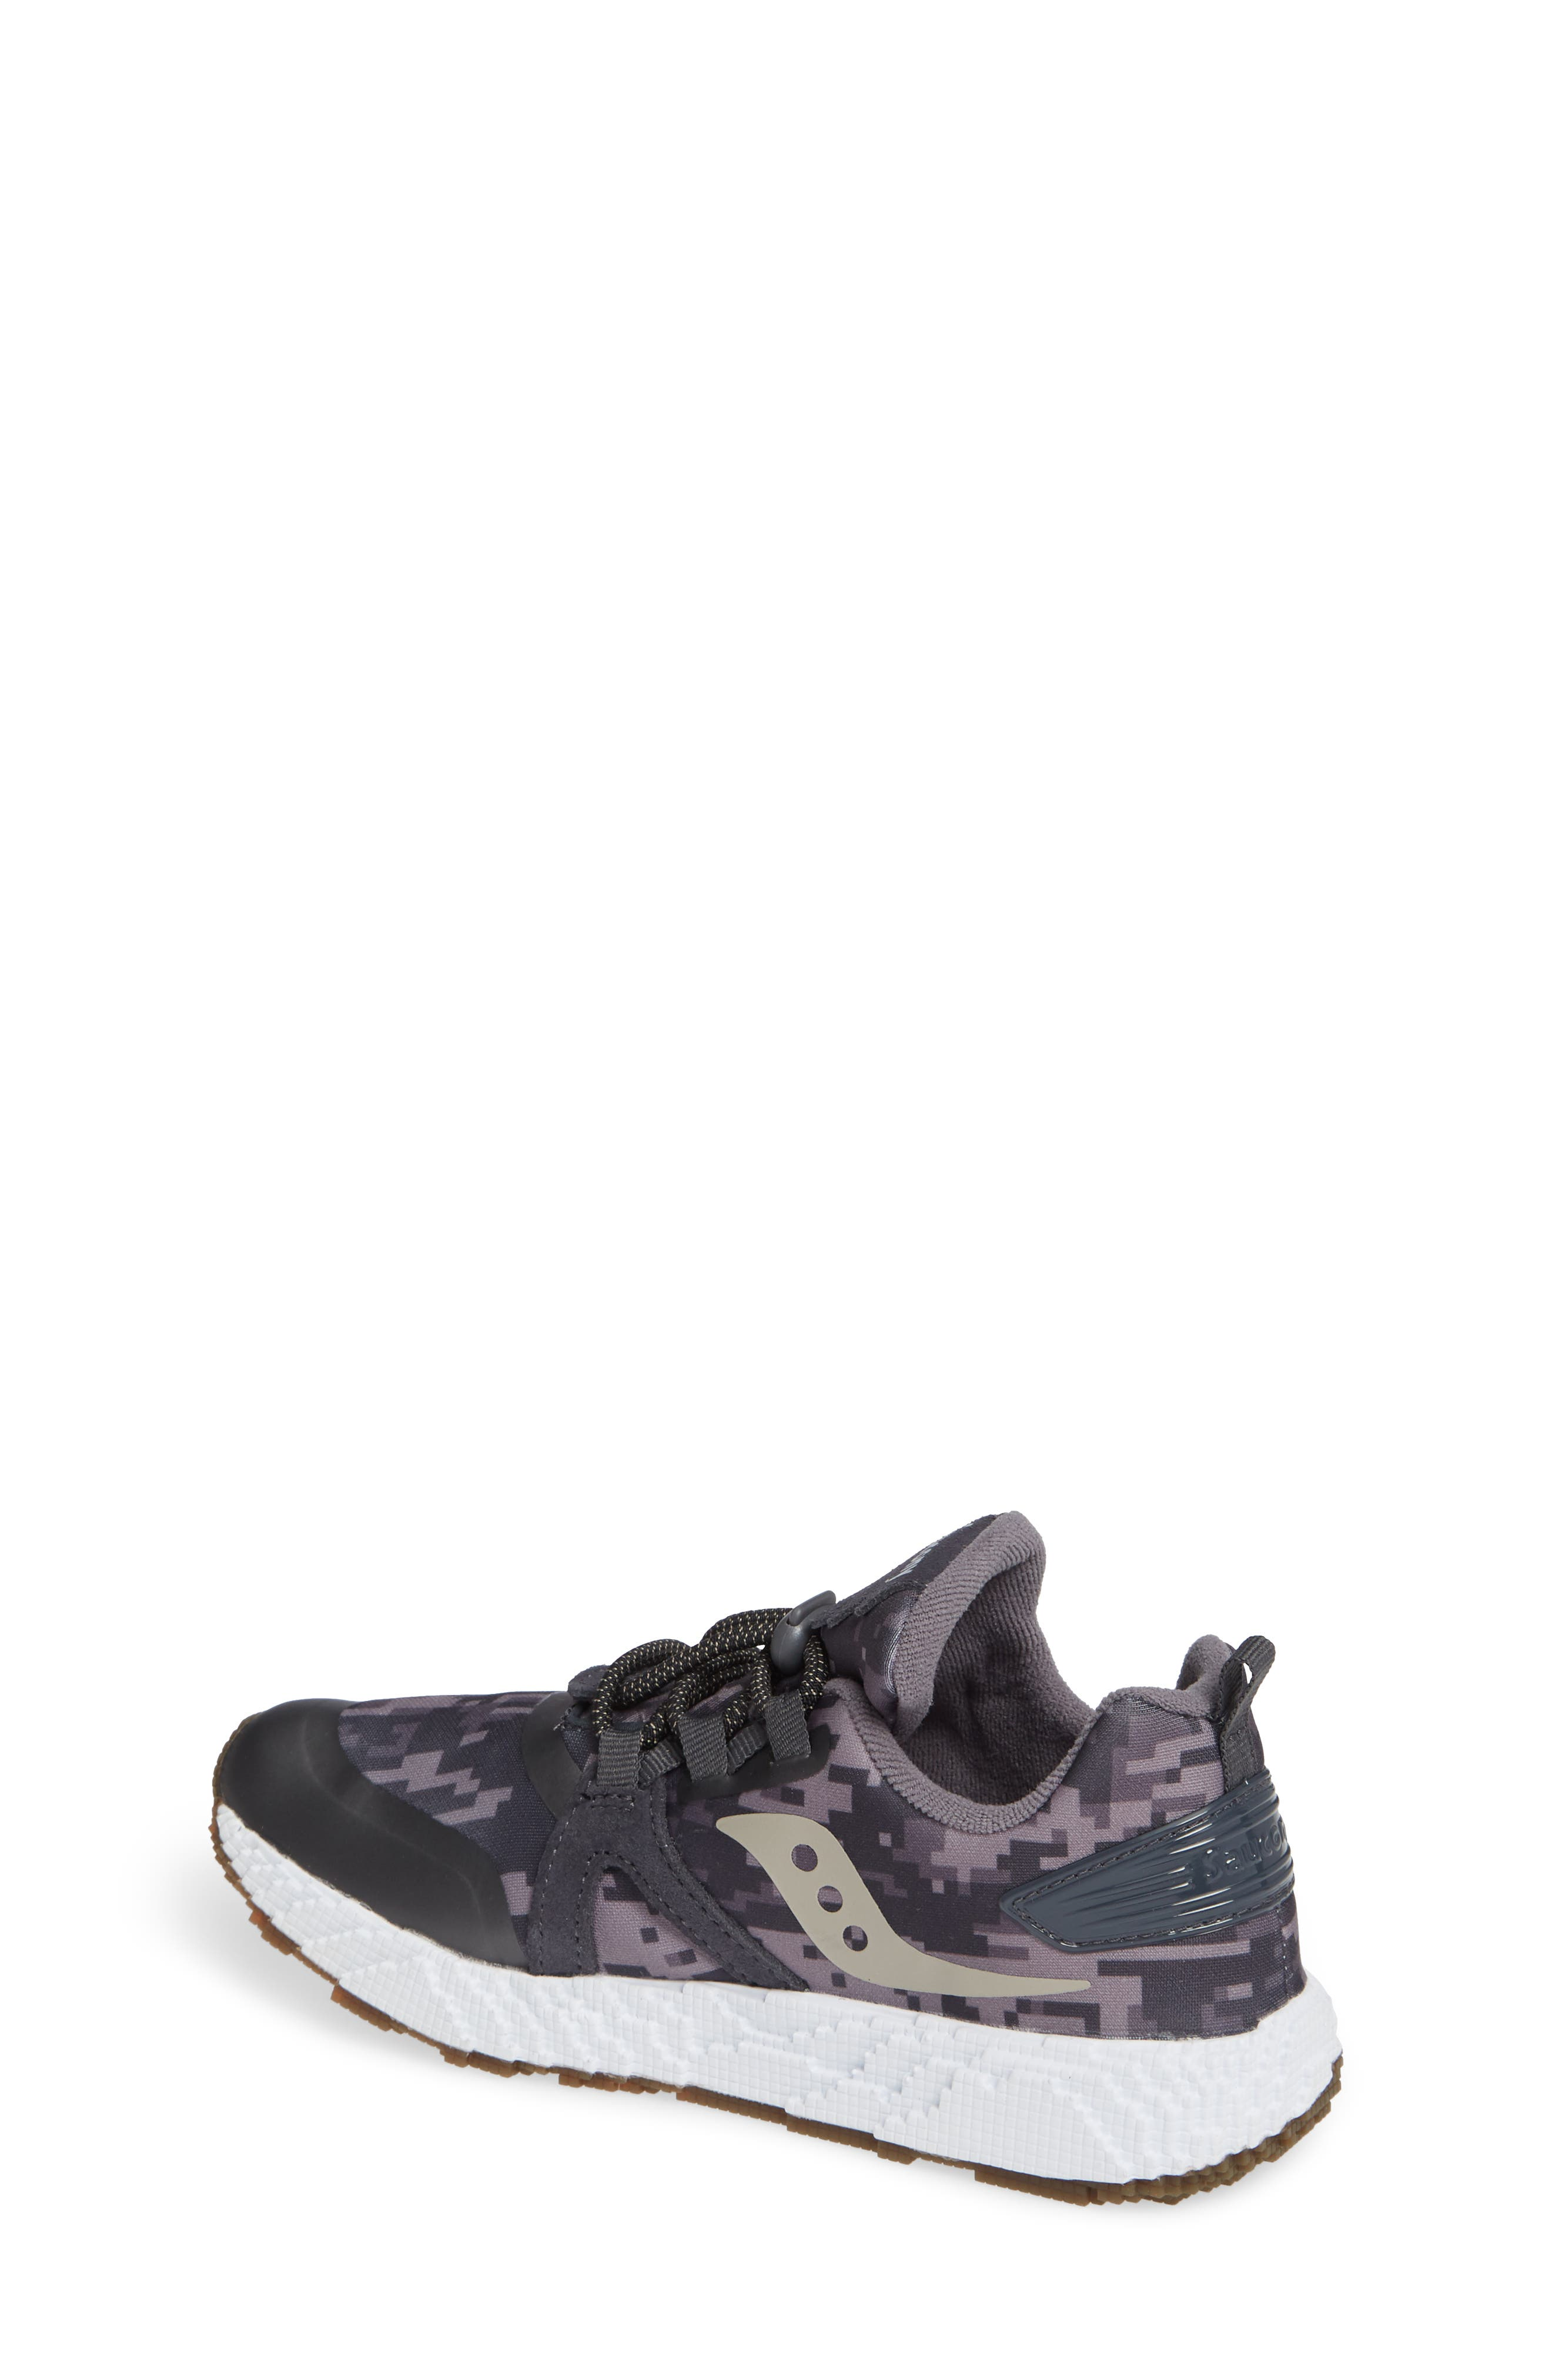 SAUCONY, Voxel 9000 Sneaker, Alternate thumbnail 2, color, GREY LEATHER/ MESH